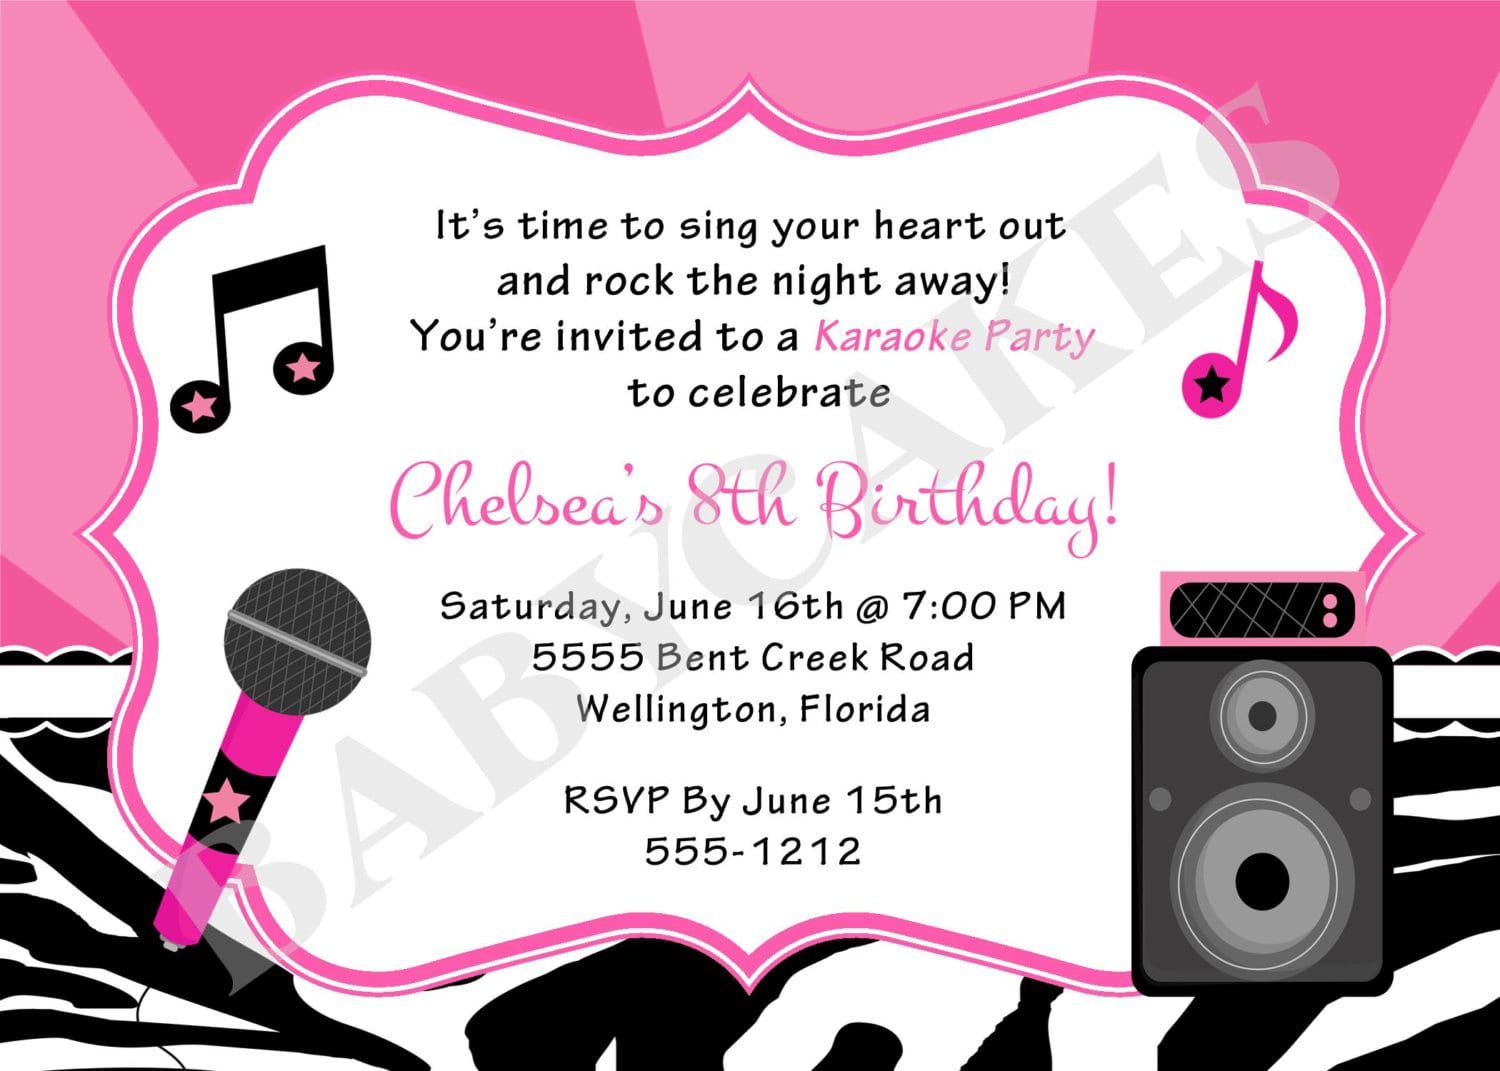 Karaoke Invitations Free - Free Printable Karaoke Party Invitations